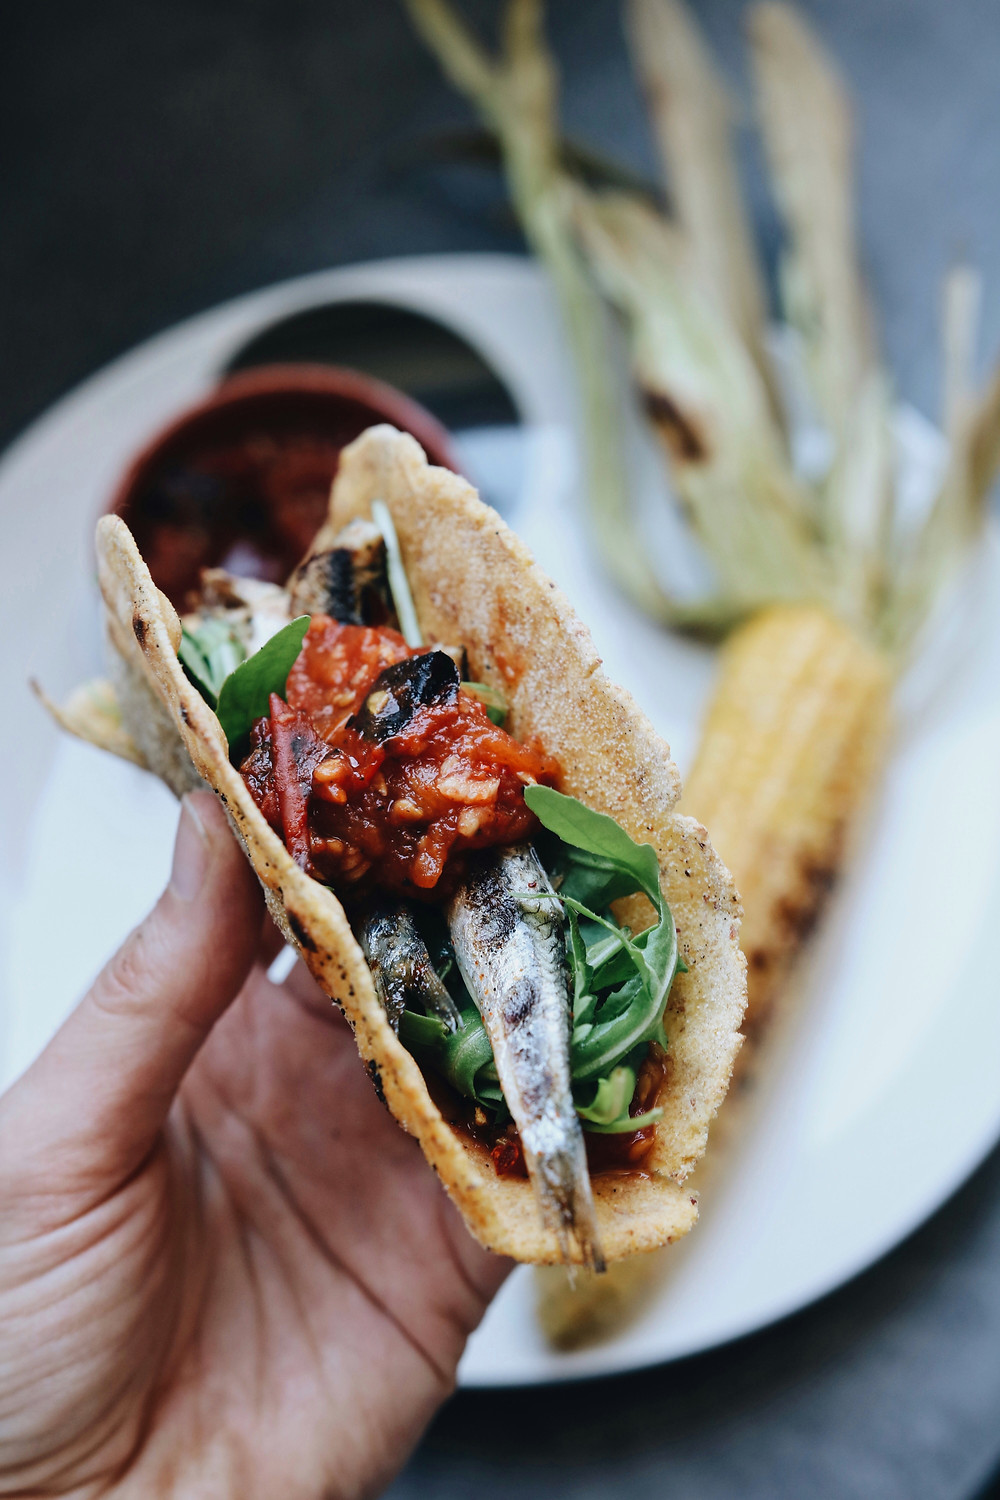 A hand holds a fish taco with arugula, anchovies and salsa.